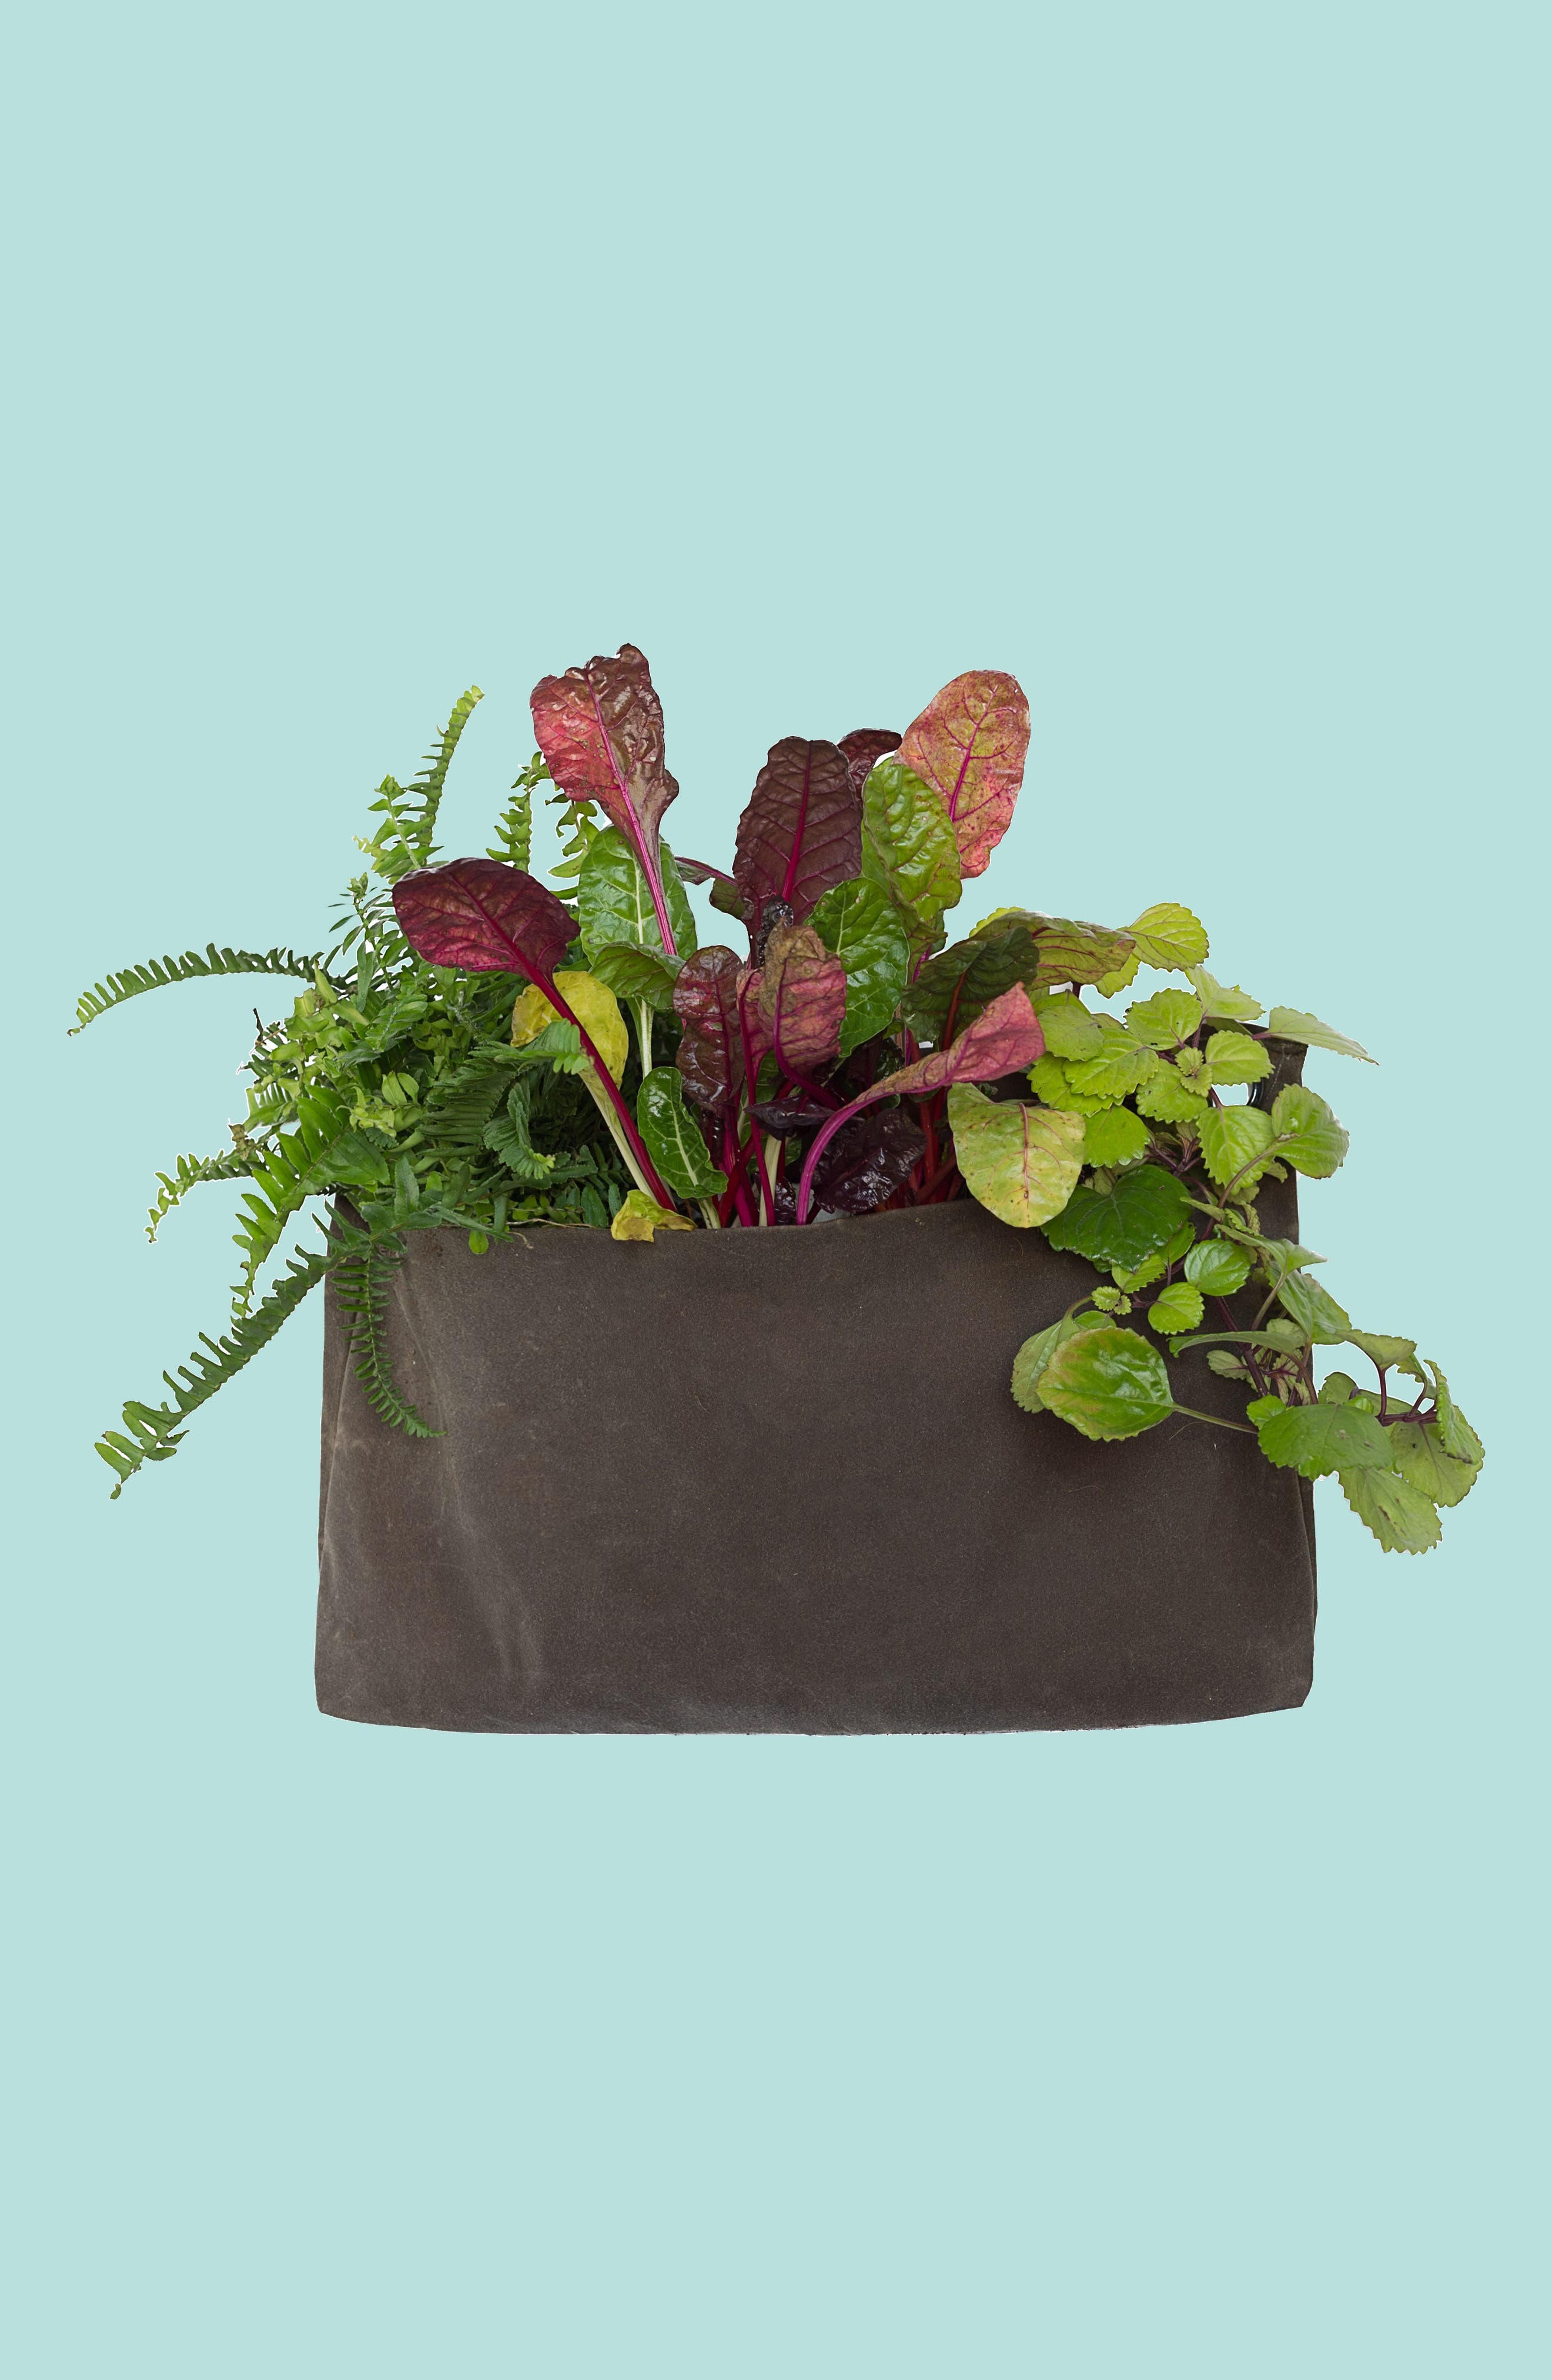 Large Waxed Canvas GrowPack Planter,                             Main thumbnail 1, color,                             200